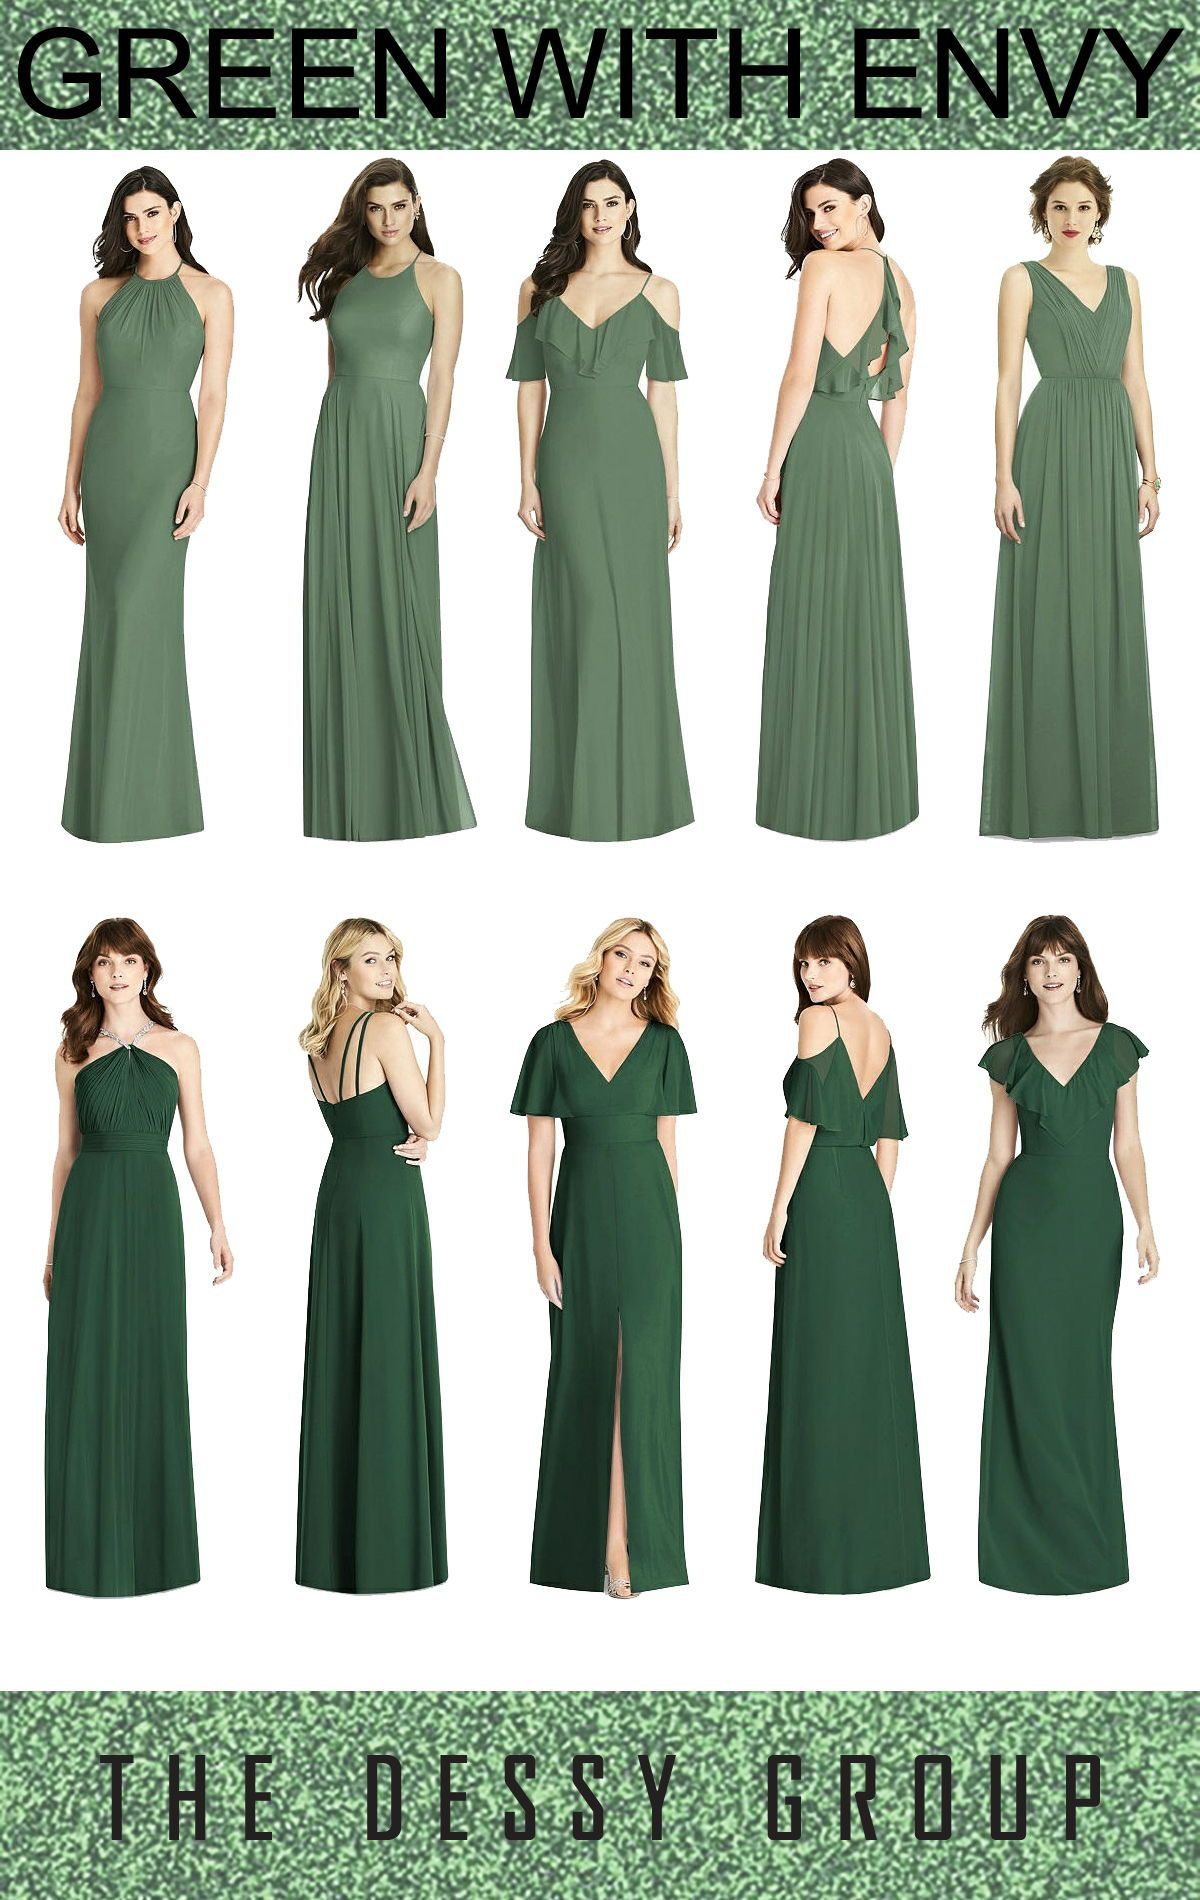 515e4b4314 Romantic fall green bridesmaids dresses will have everyone in envy. From  The Dessy Group.